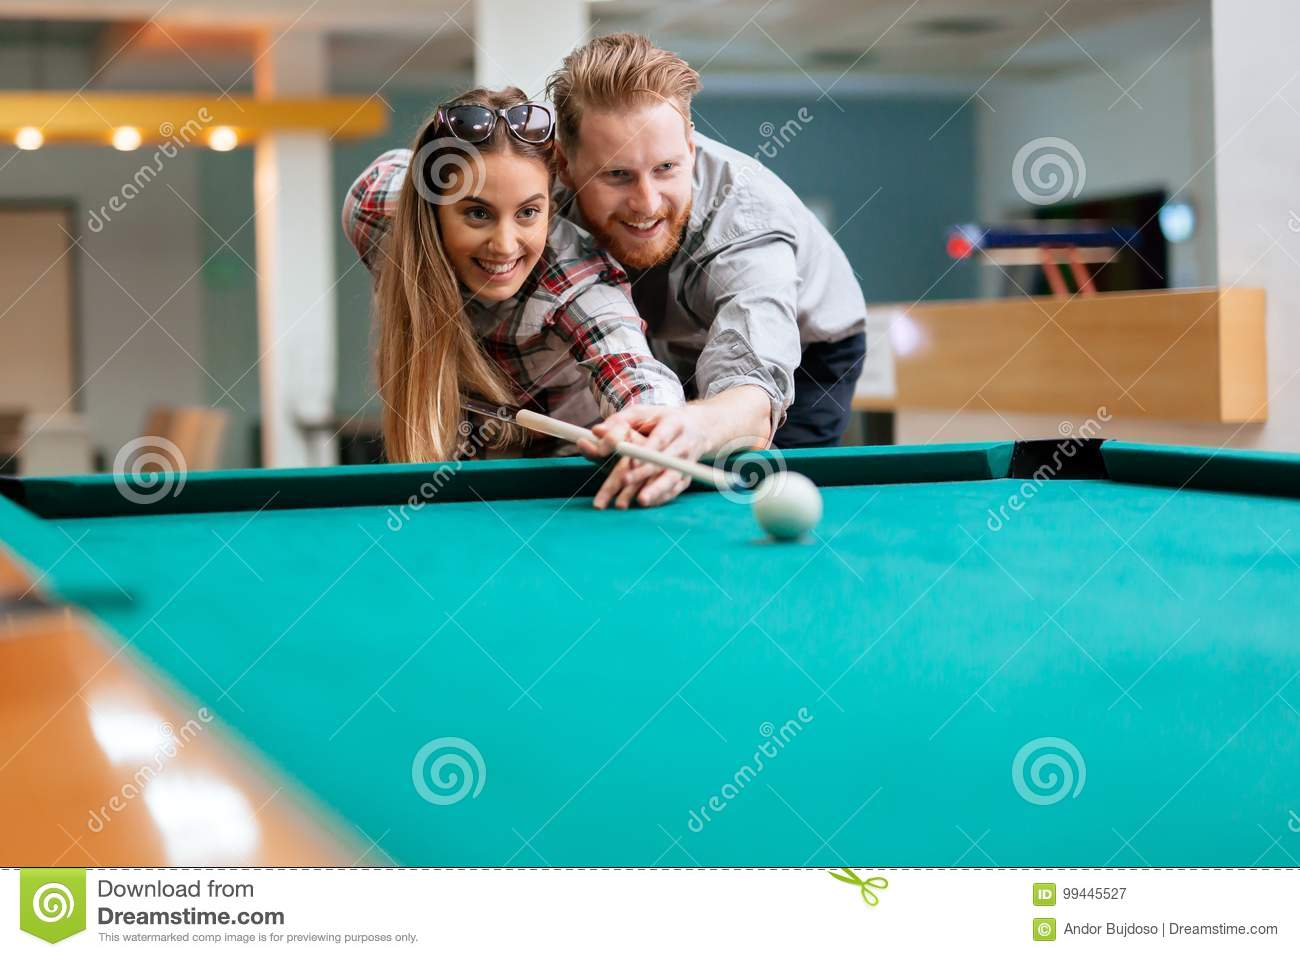 snooker dating